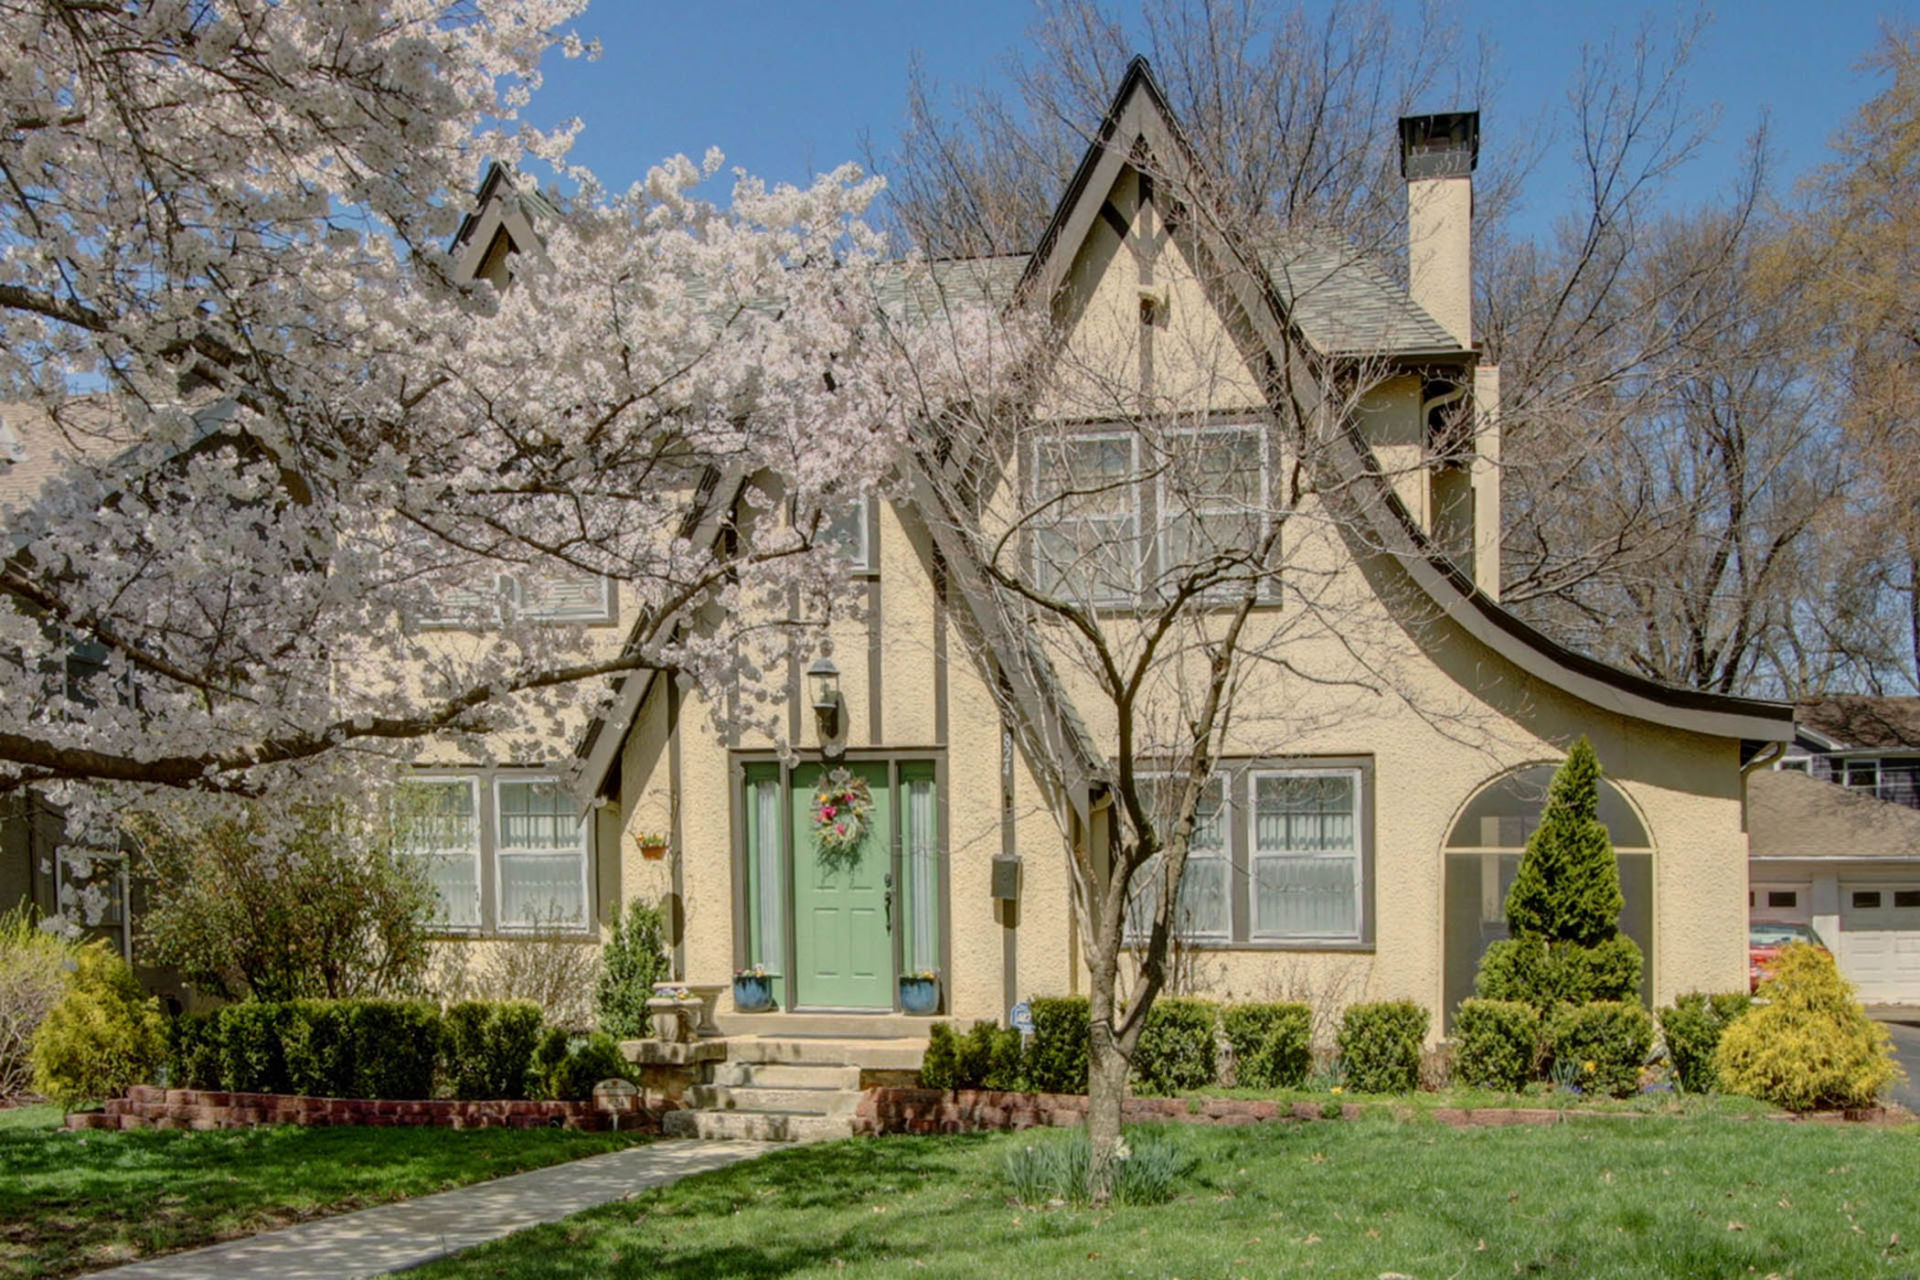 10K PRICE REDUCTION!!! Darling Tudor Home with Stunning Details!